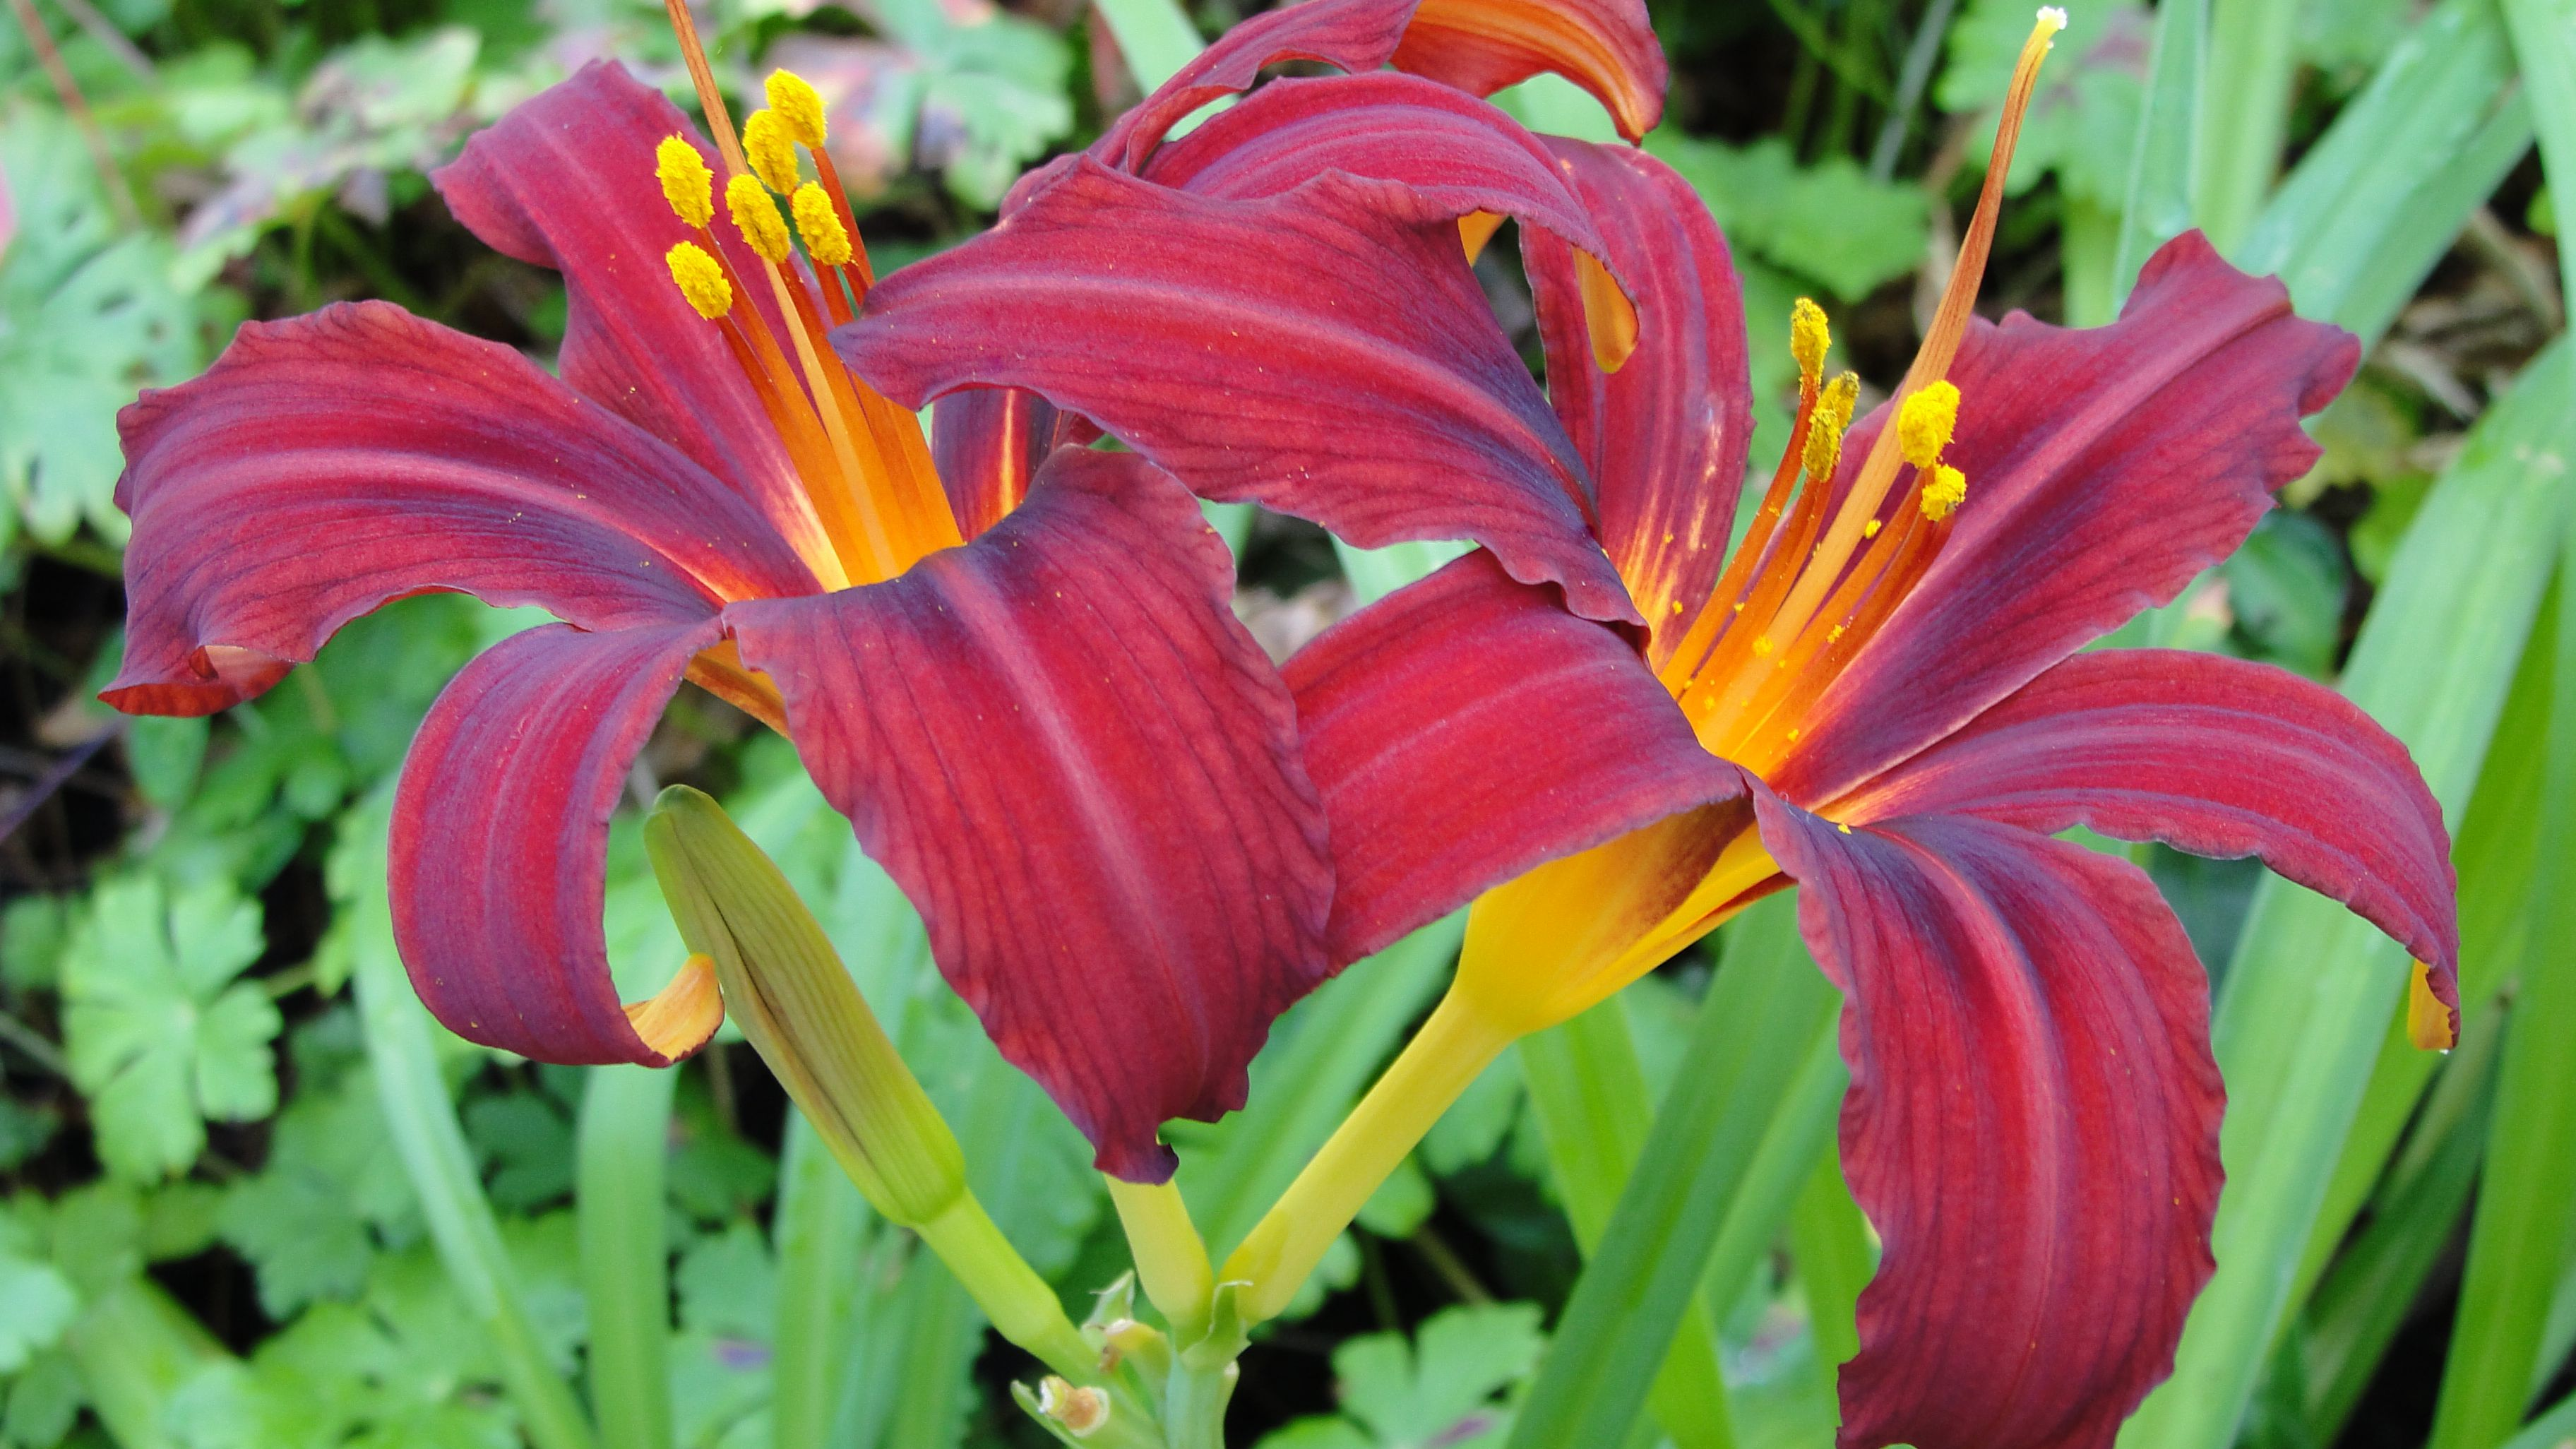 How To Tell The Difference Between Lilies And Daylilies